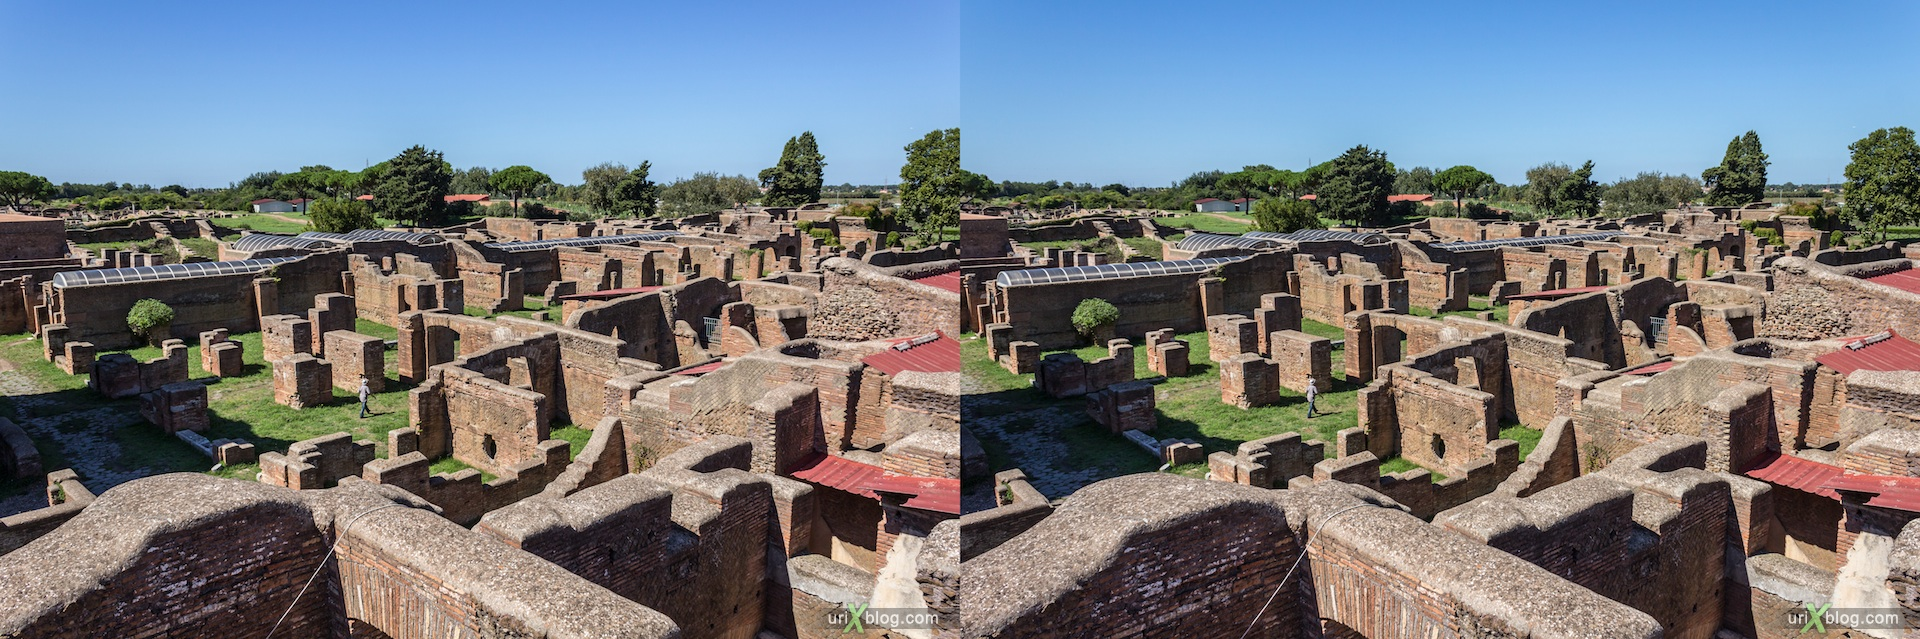 2012, Ostia Antica, Rome, Italy, ancient rome, city, 3D, stereo pair, cross-eyed, crossview, cross view stereo pair